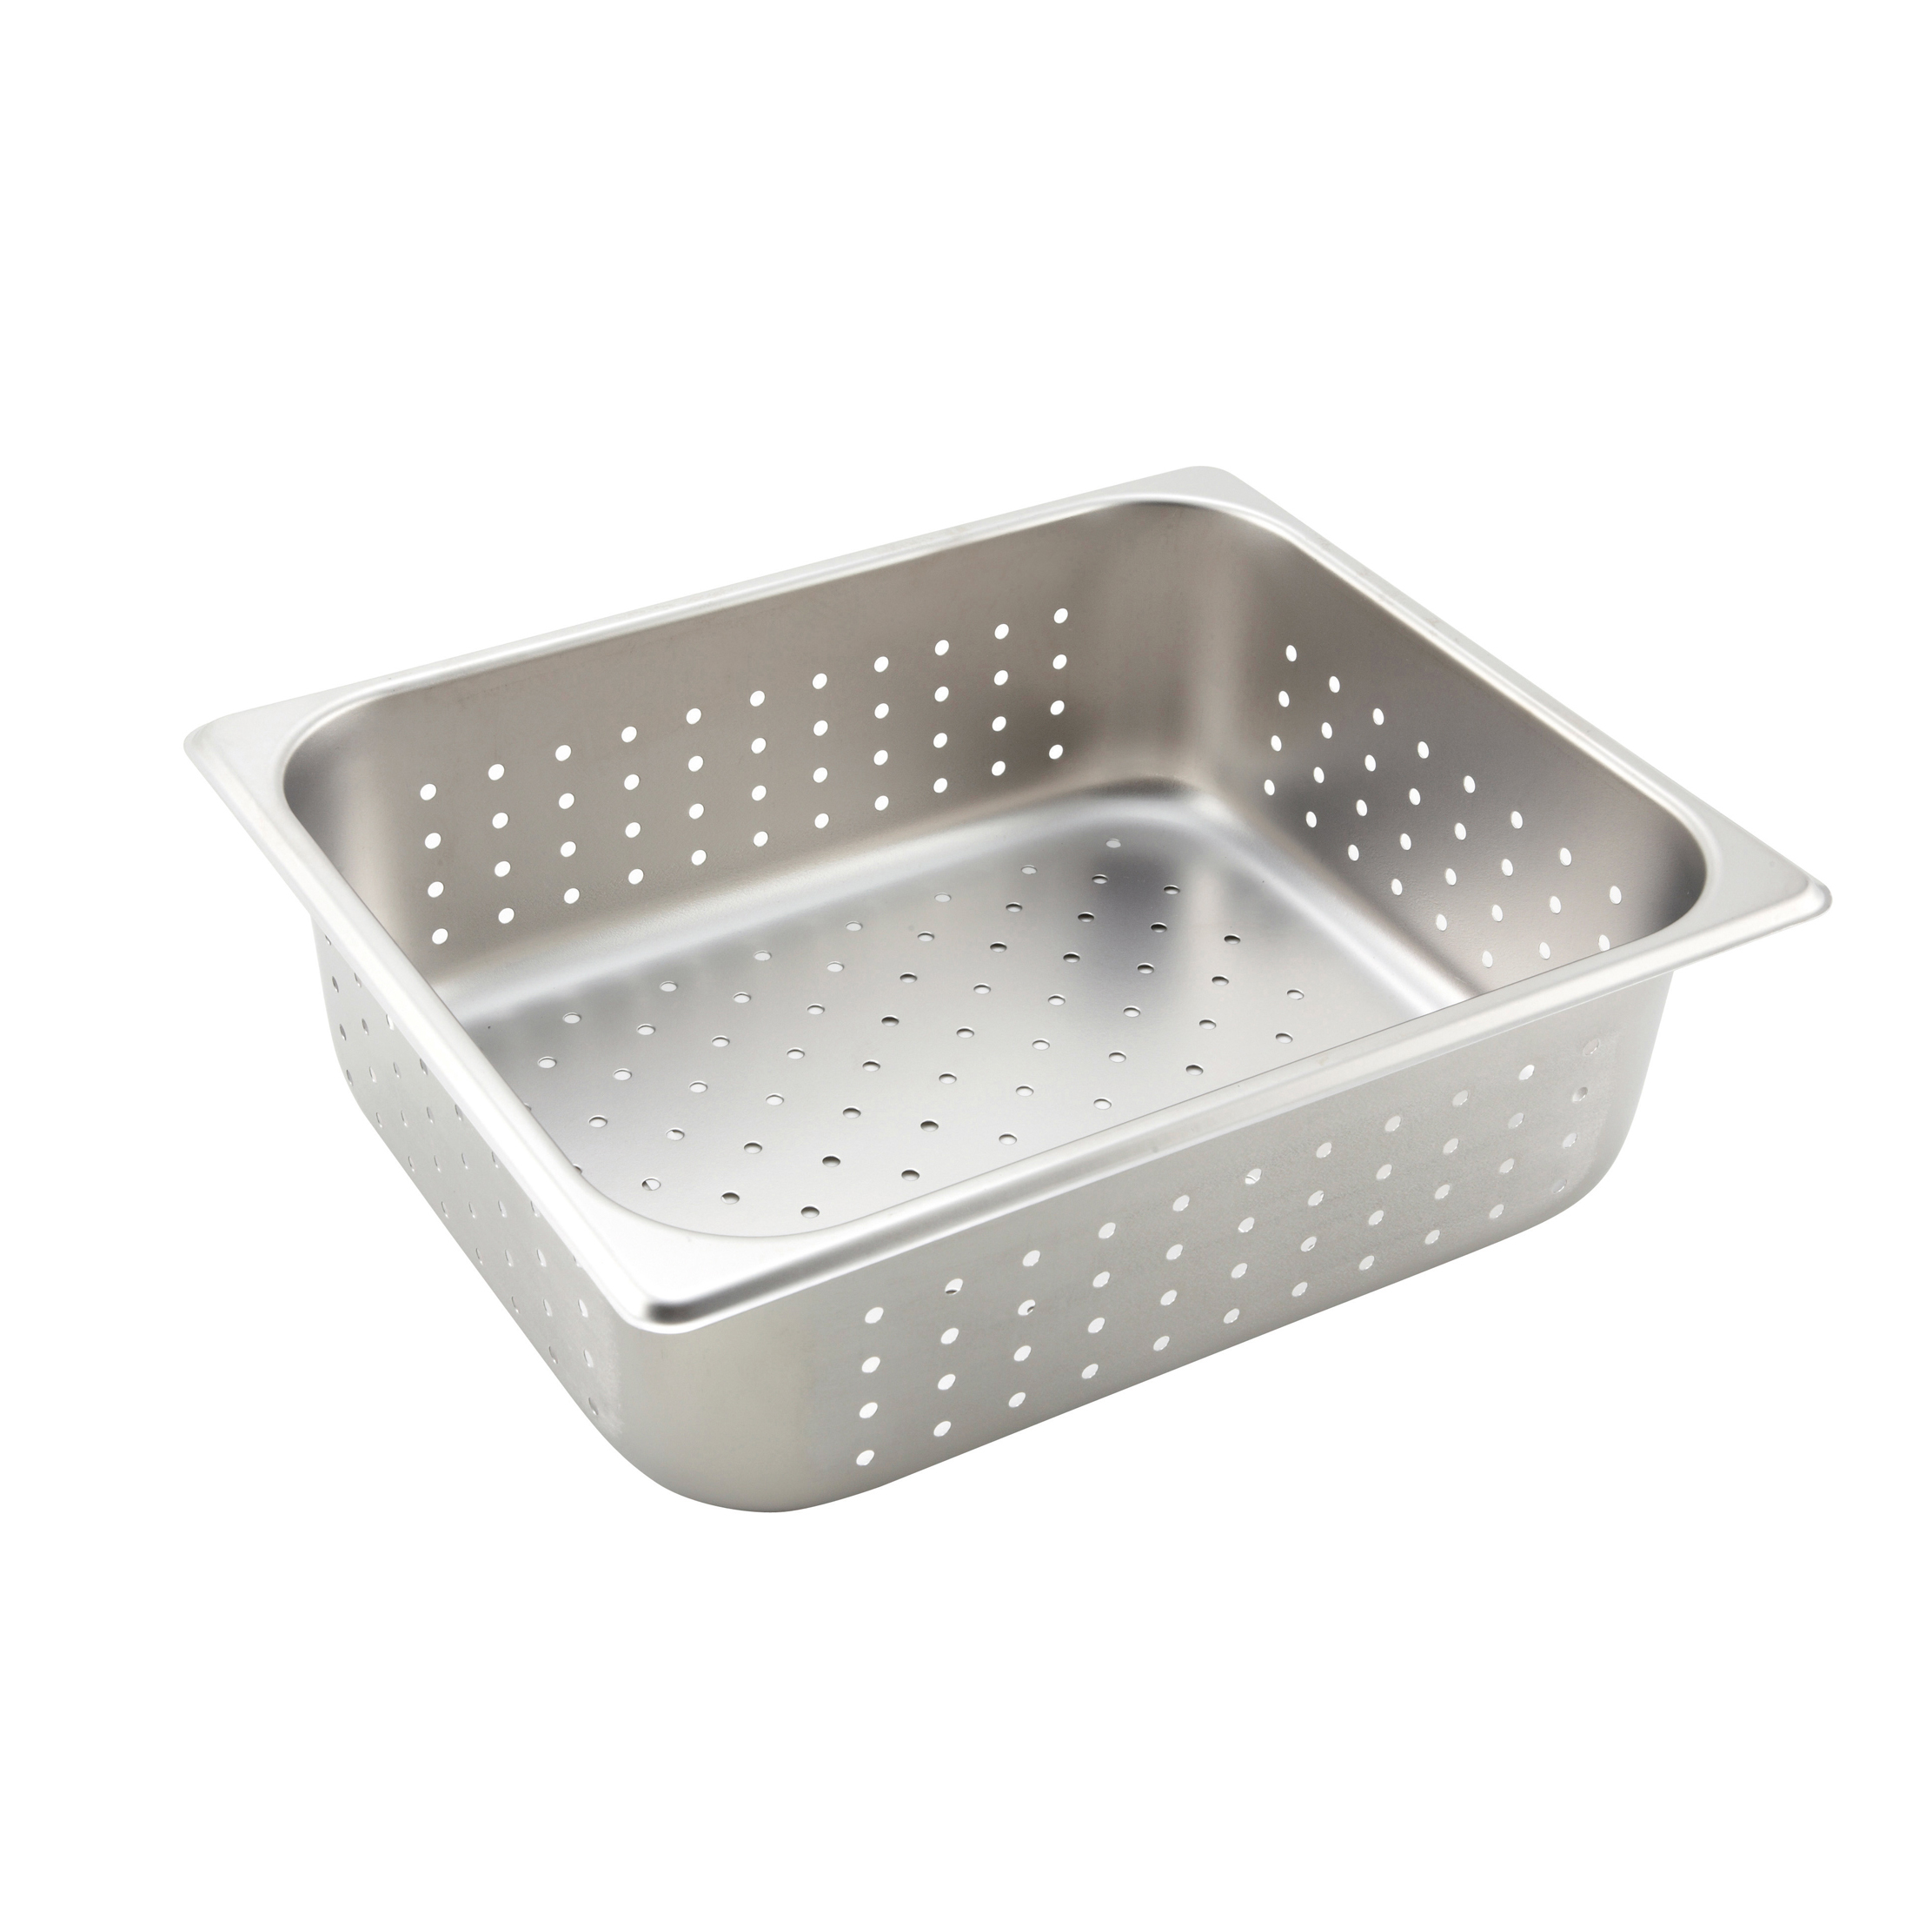 Winco SPJH-204PF steam table pan, stainless steel